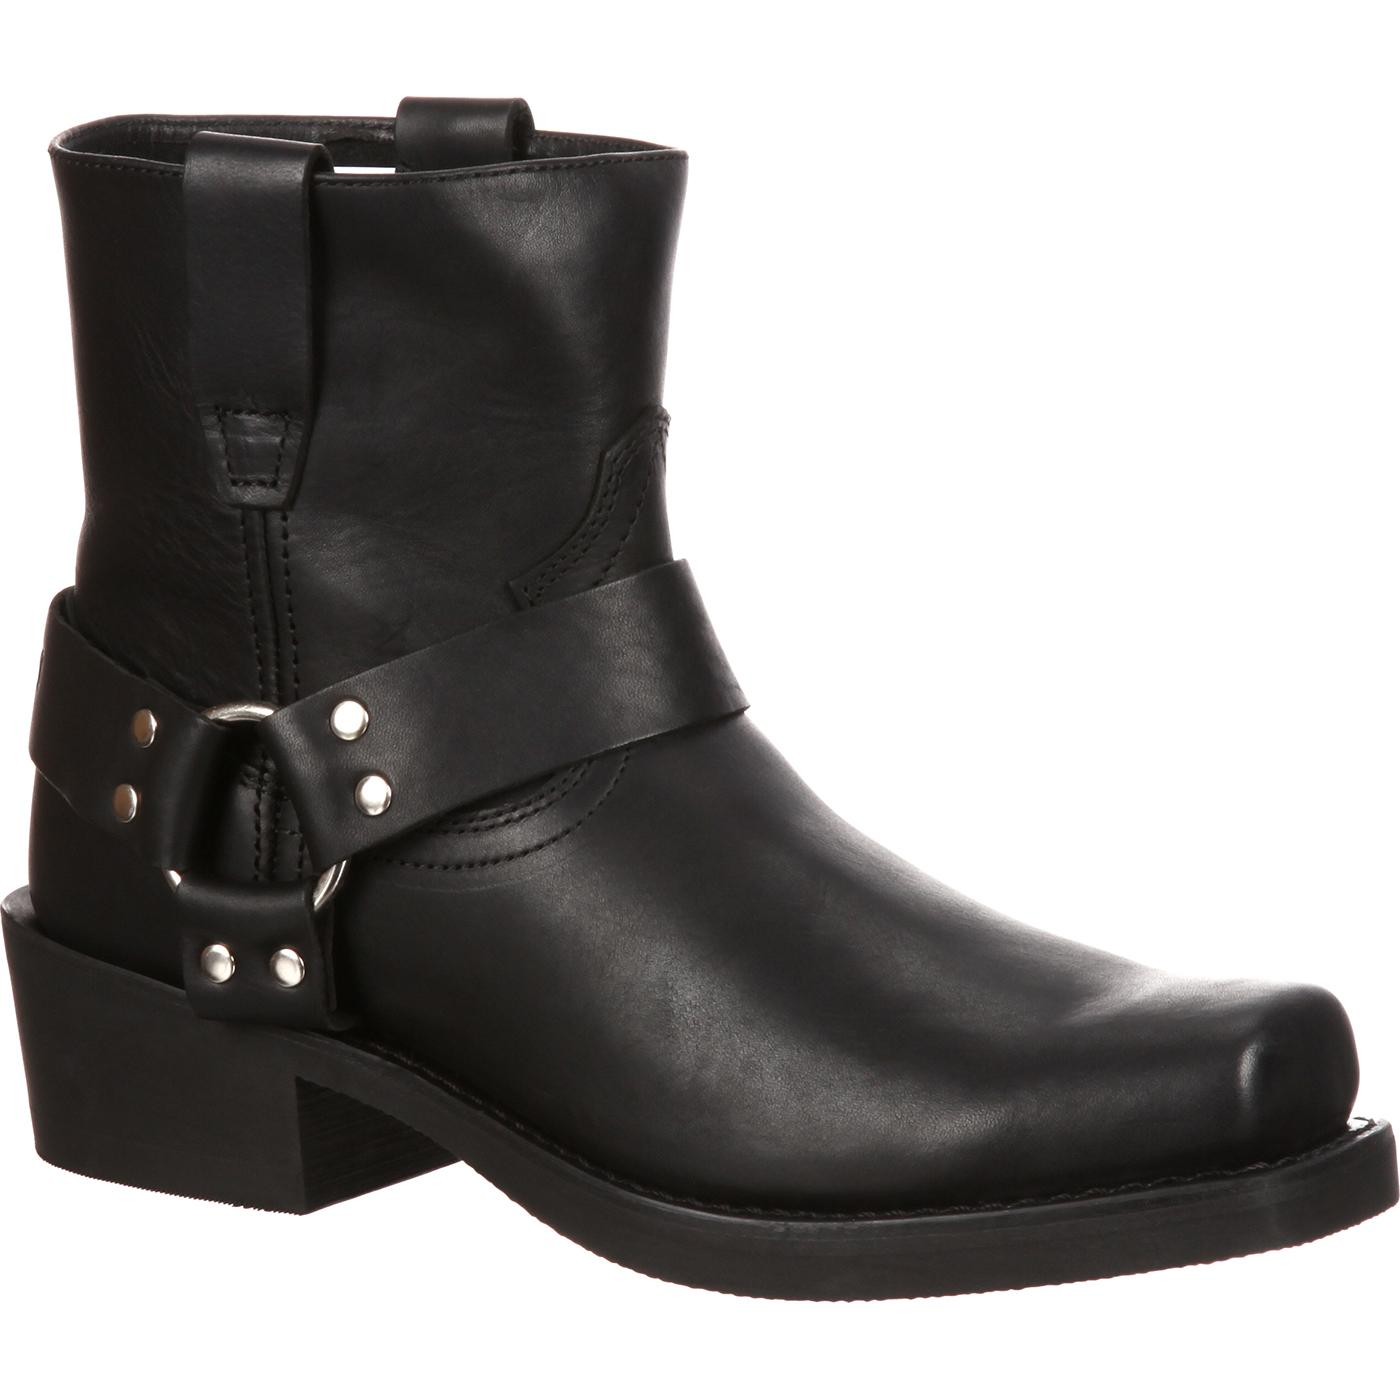 free shipping shop for Durango Men's Harness Boots fast delivery online cheap get to buy oOLyqahHb0